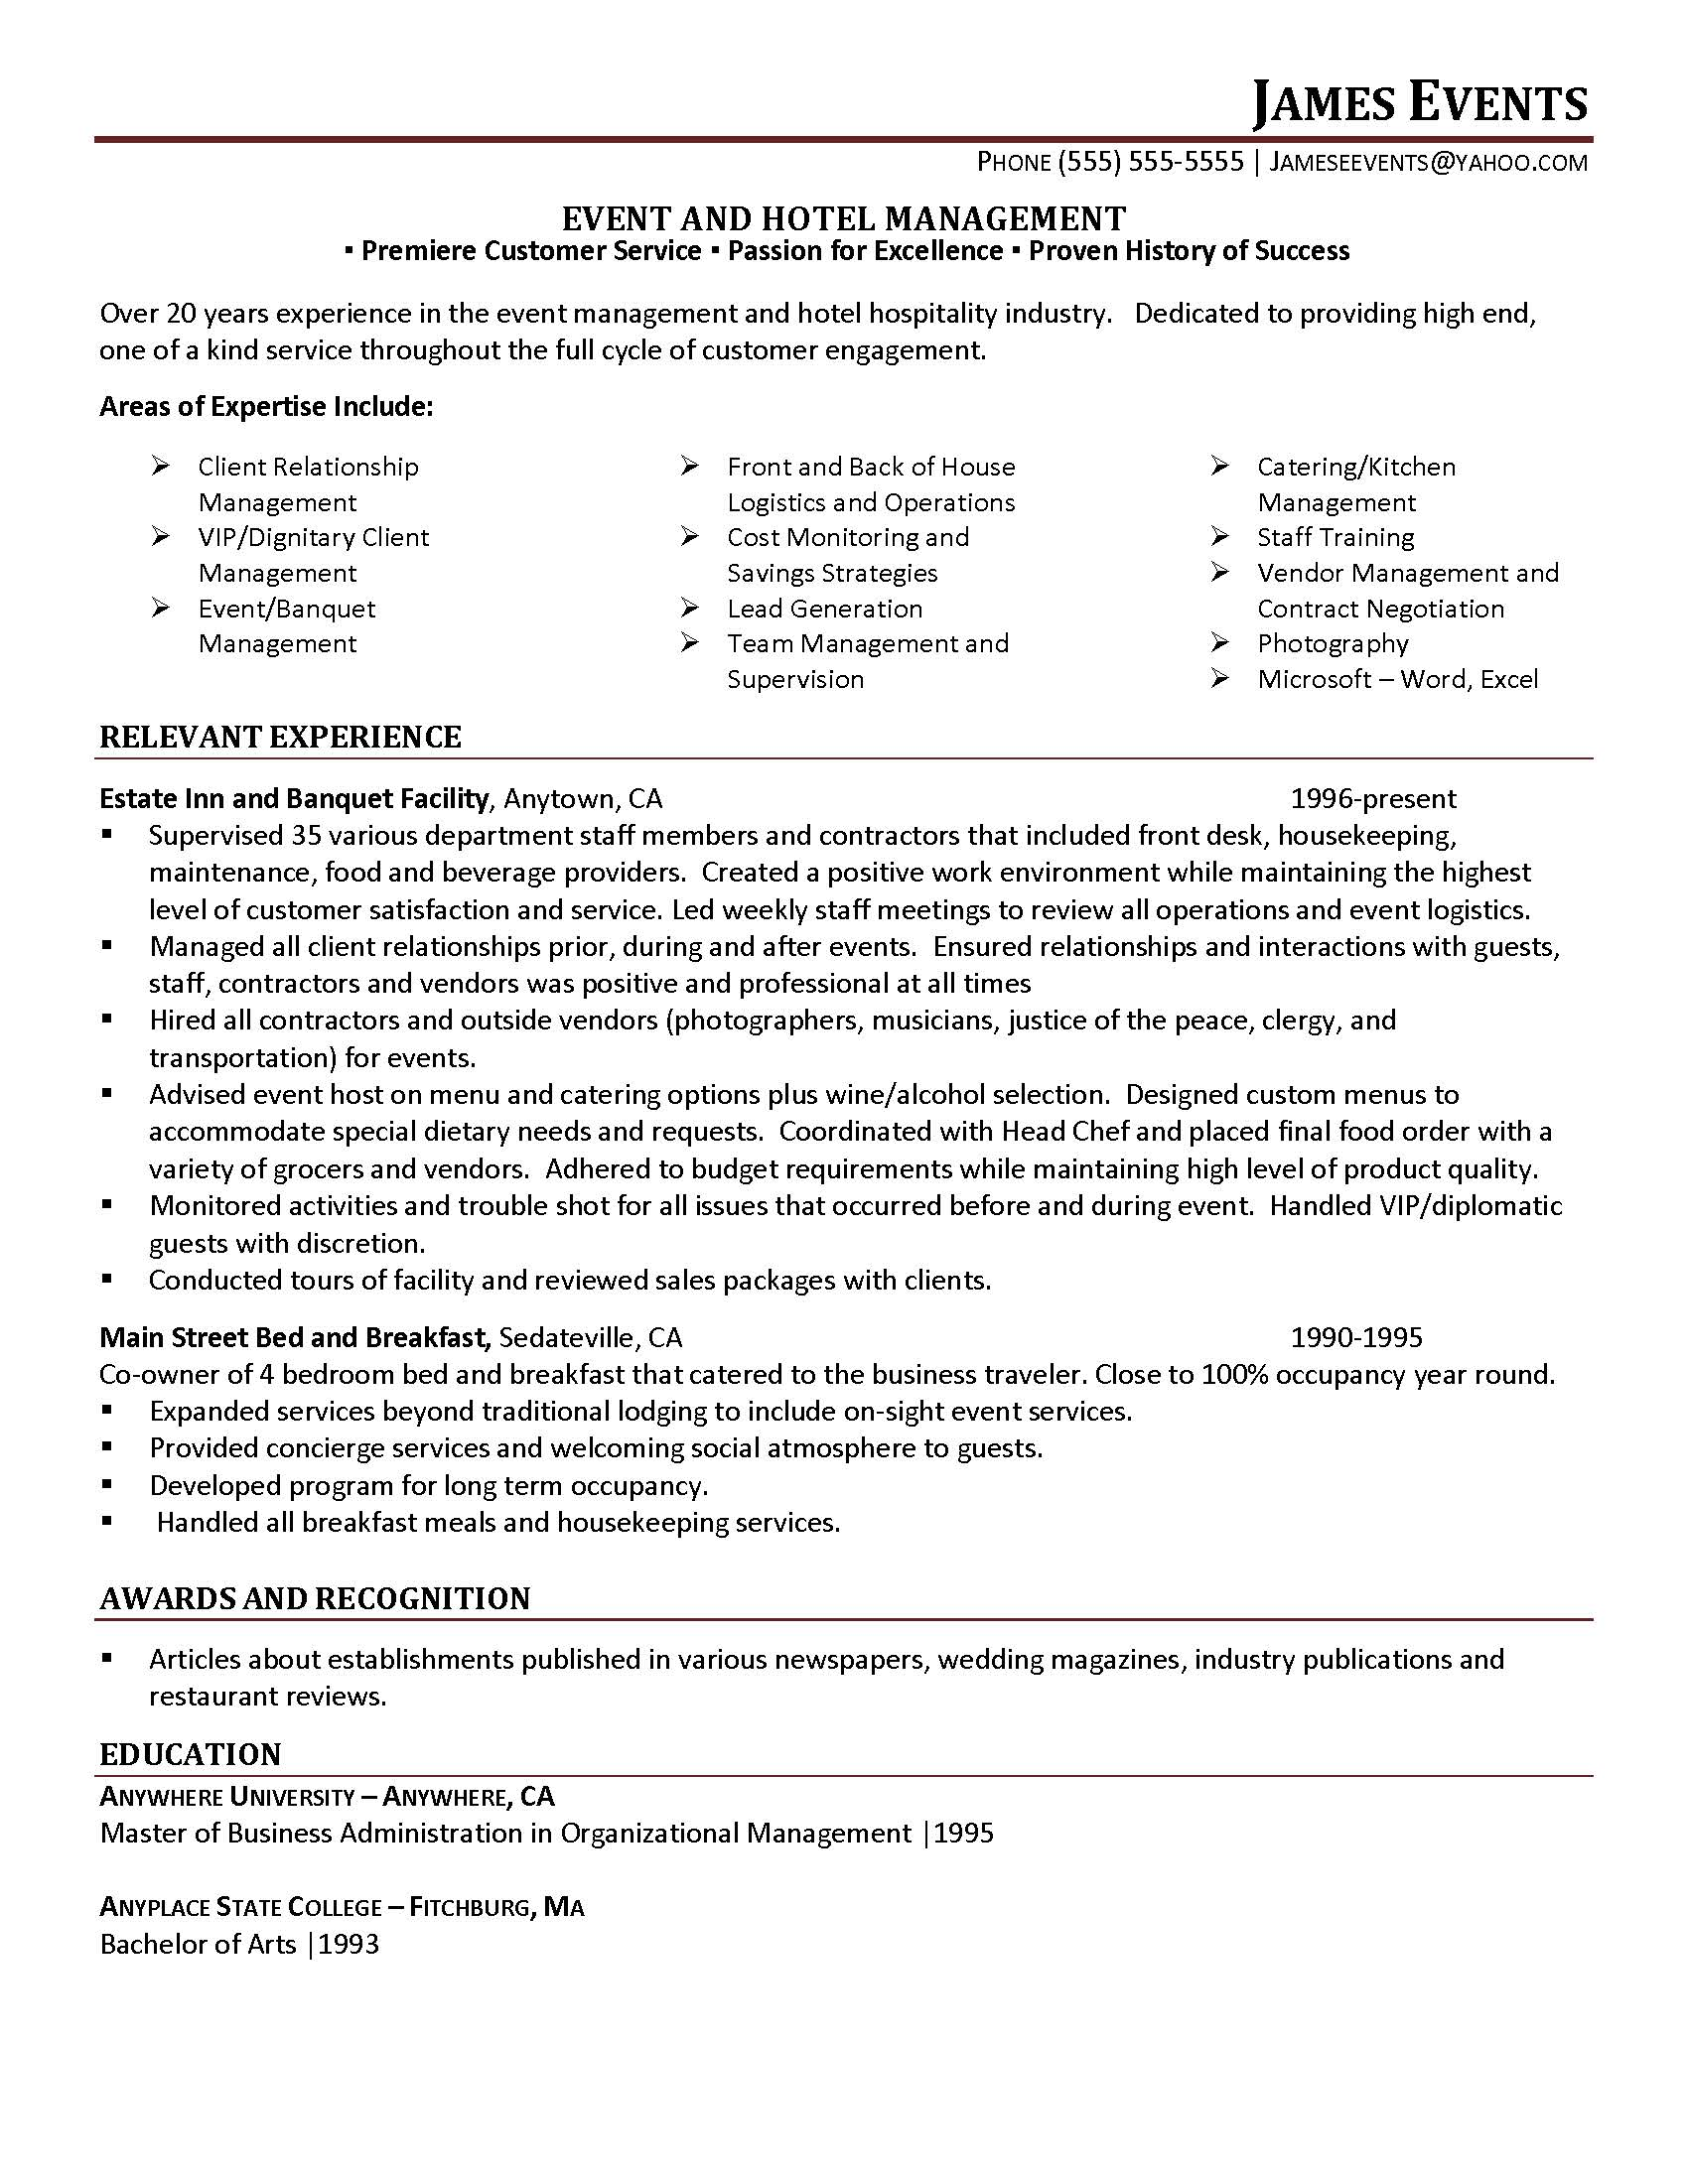 Elementary School Teacher Youth Pastor Resume Samples